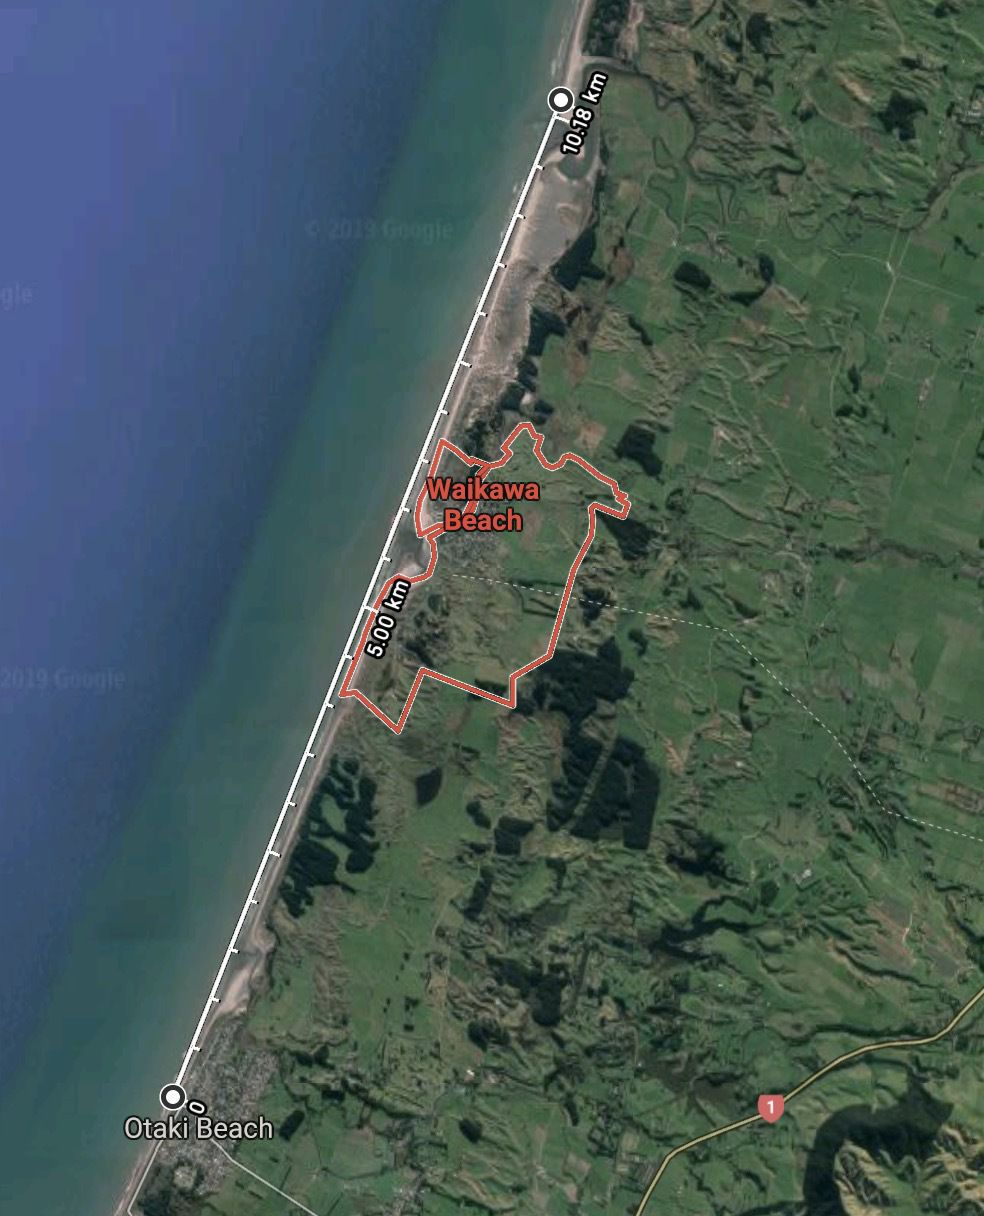 Map showing 10 Km of west coast beach between Ōtaki in the south and Kuku in the north.